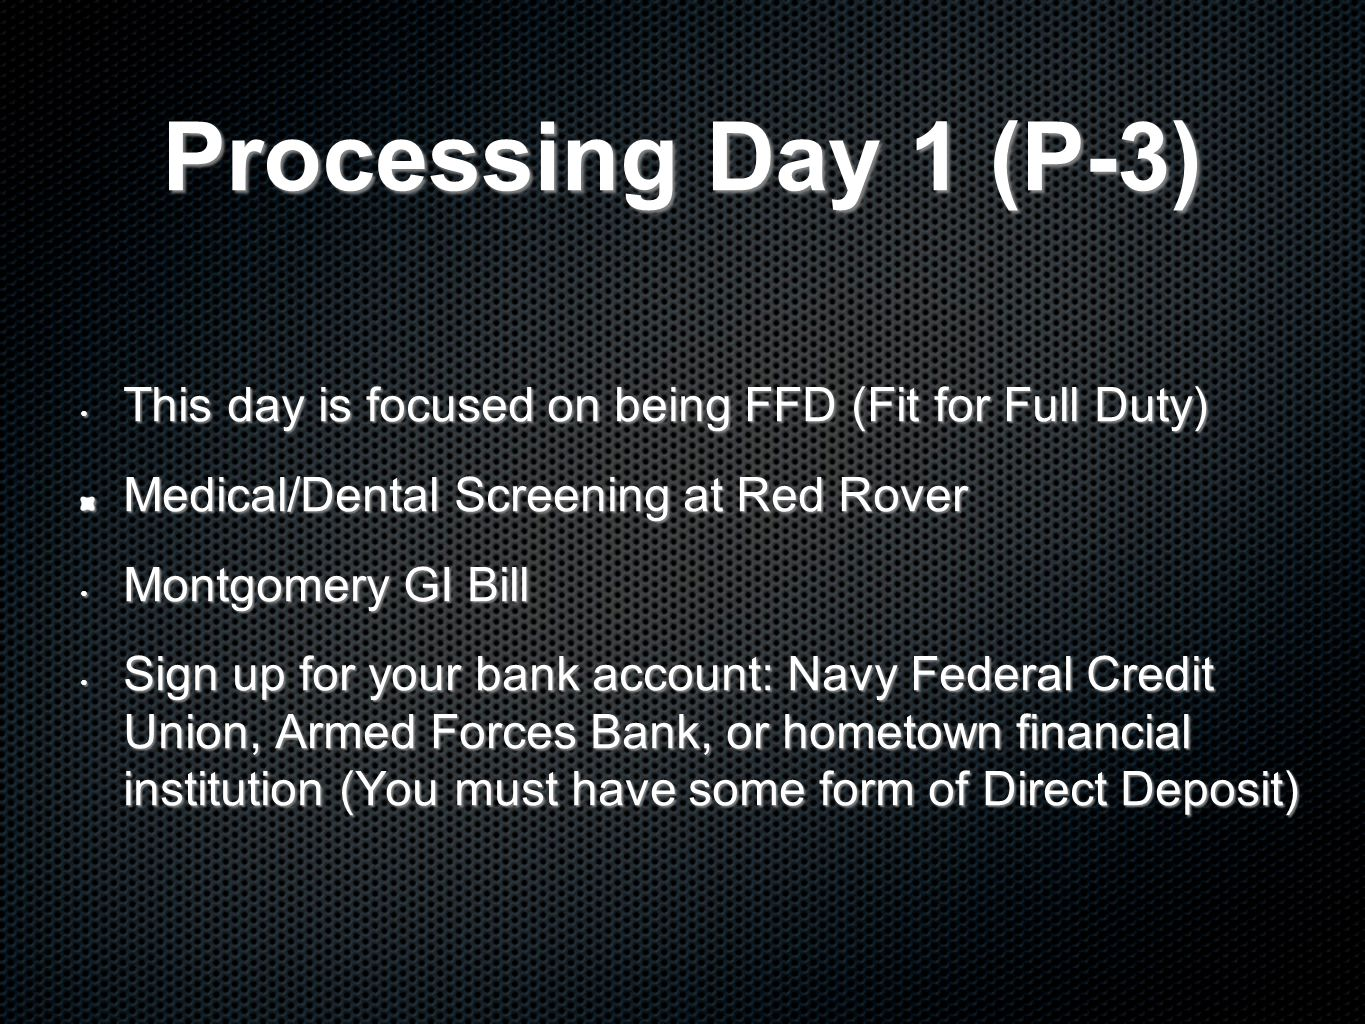 Processing Day 1 (P-3) This day is focused on being FFD (Fit for Full Duty) This day is focused on being FFD (Fit for Full Duty) Medical/Dental Screening at Red Rover Montgomery GI Bill Montgomery GI Bill Sign up for your bank account: Navy Federal Credit Union, Armed Forces Bank, or hometown financial institution (You must have some form of Direct Deposit) Sign up for your bank account: Navy Federal Credit Union, Armed Forces Bank, or hometown financial institution (You must have some form of Direct Deposit)